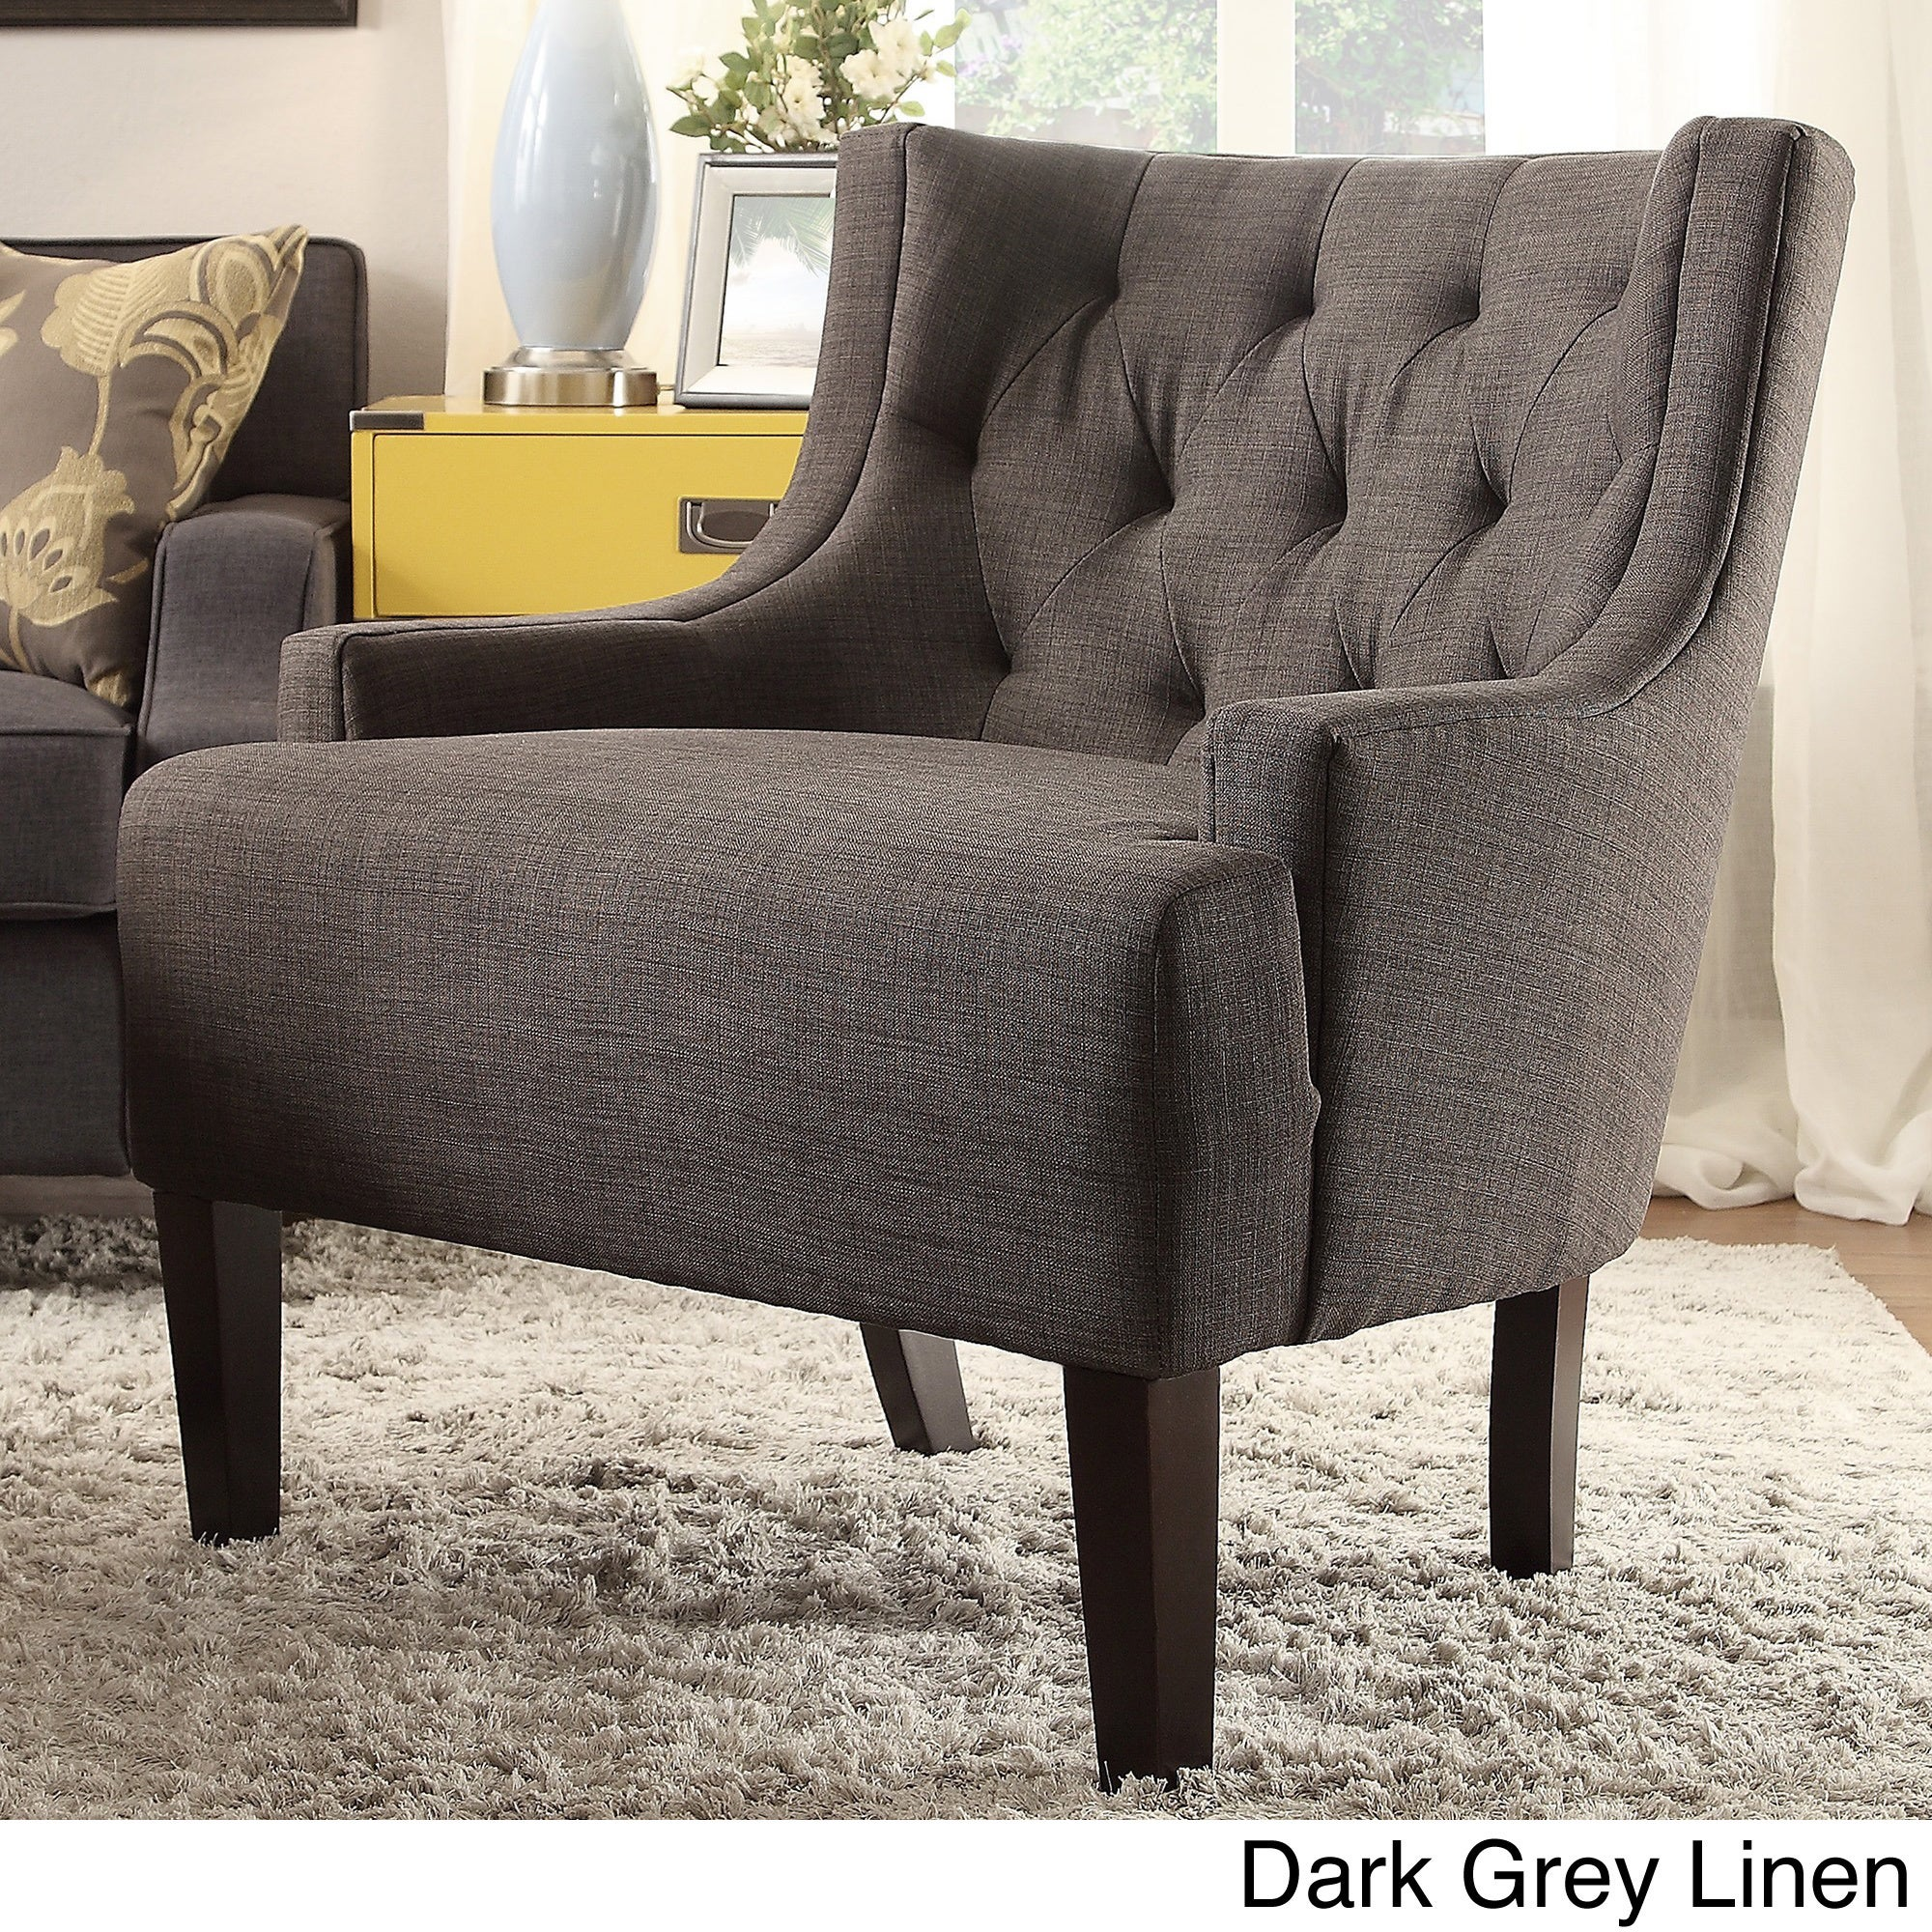 Tess Wingback Tufted Linen Upholstered Club Chair By INSP.